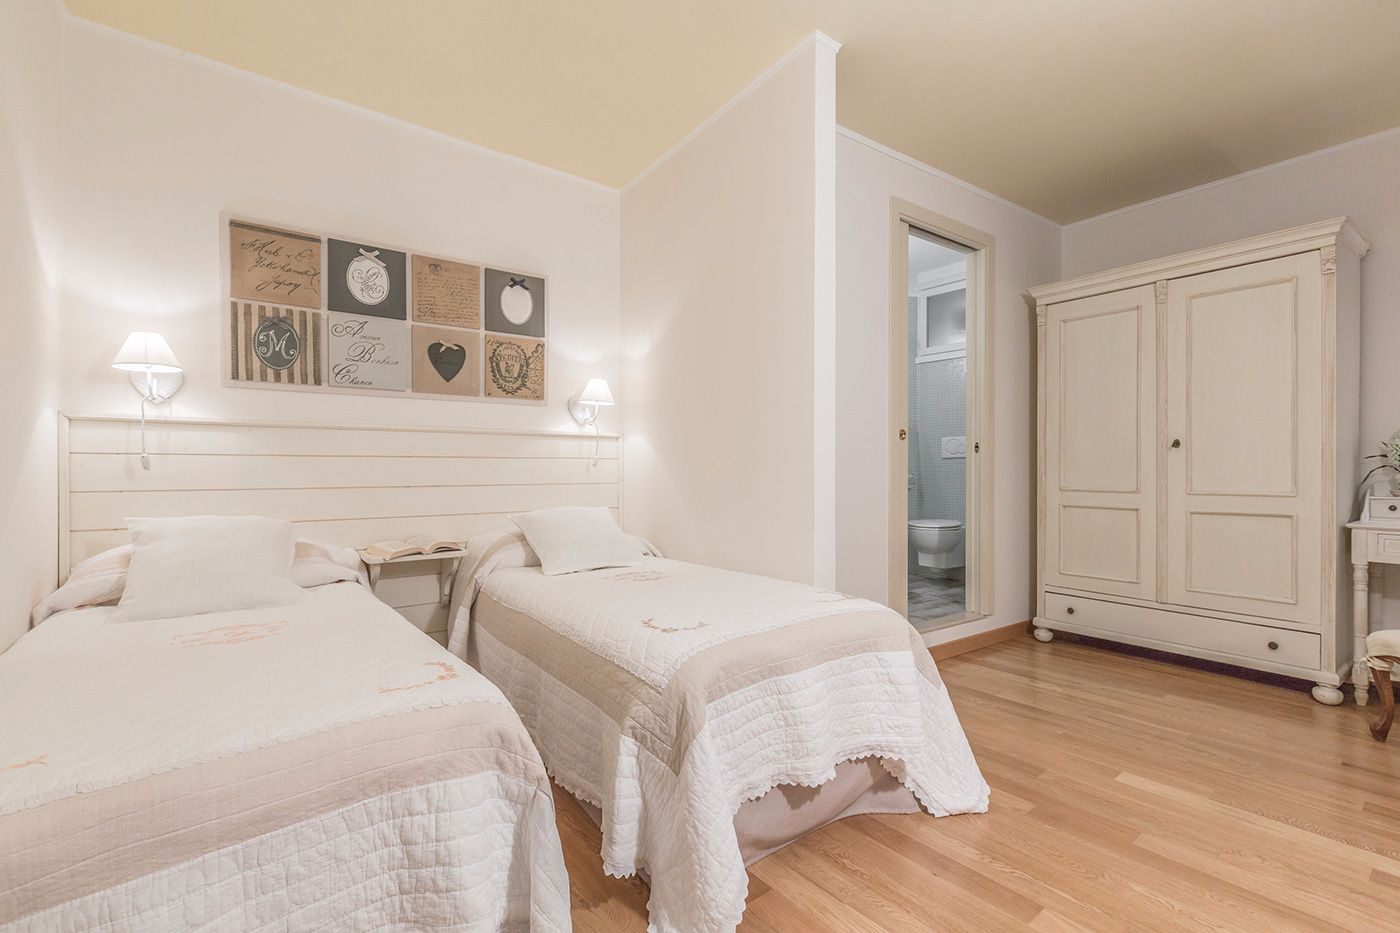 third bedroom with en-suite bathroom, that can be used as double or twin